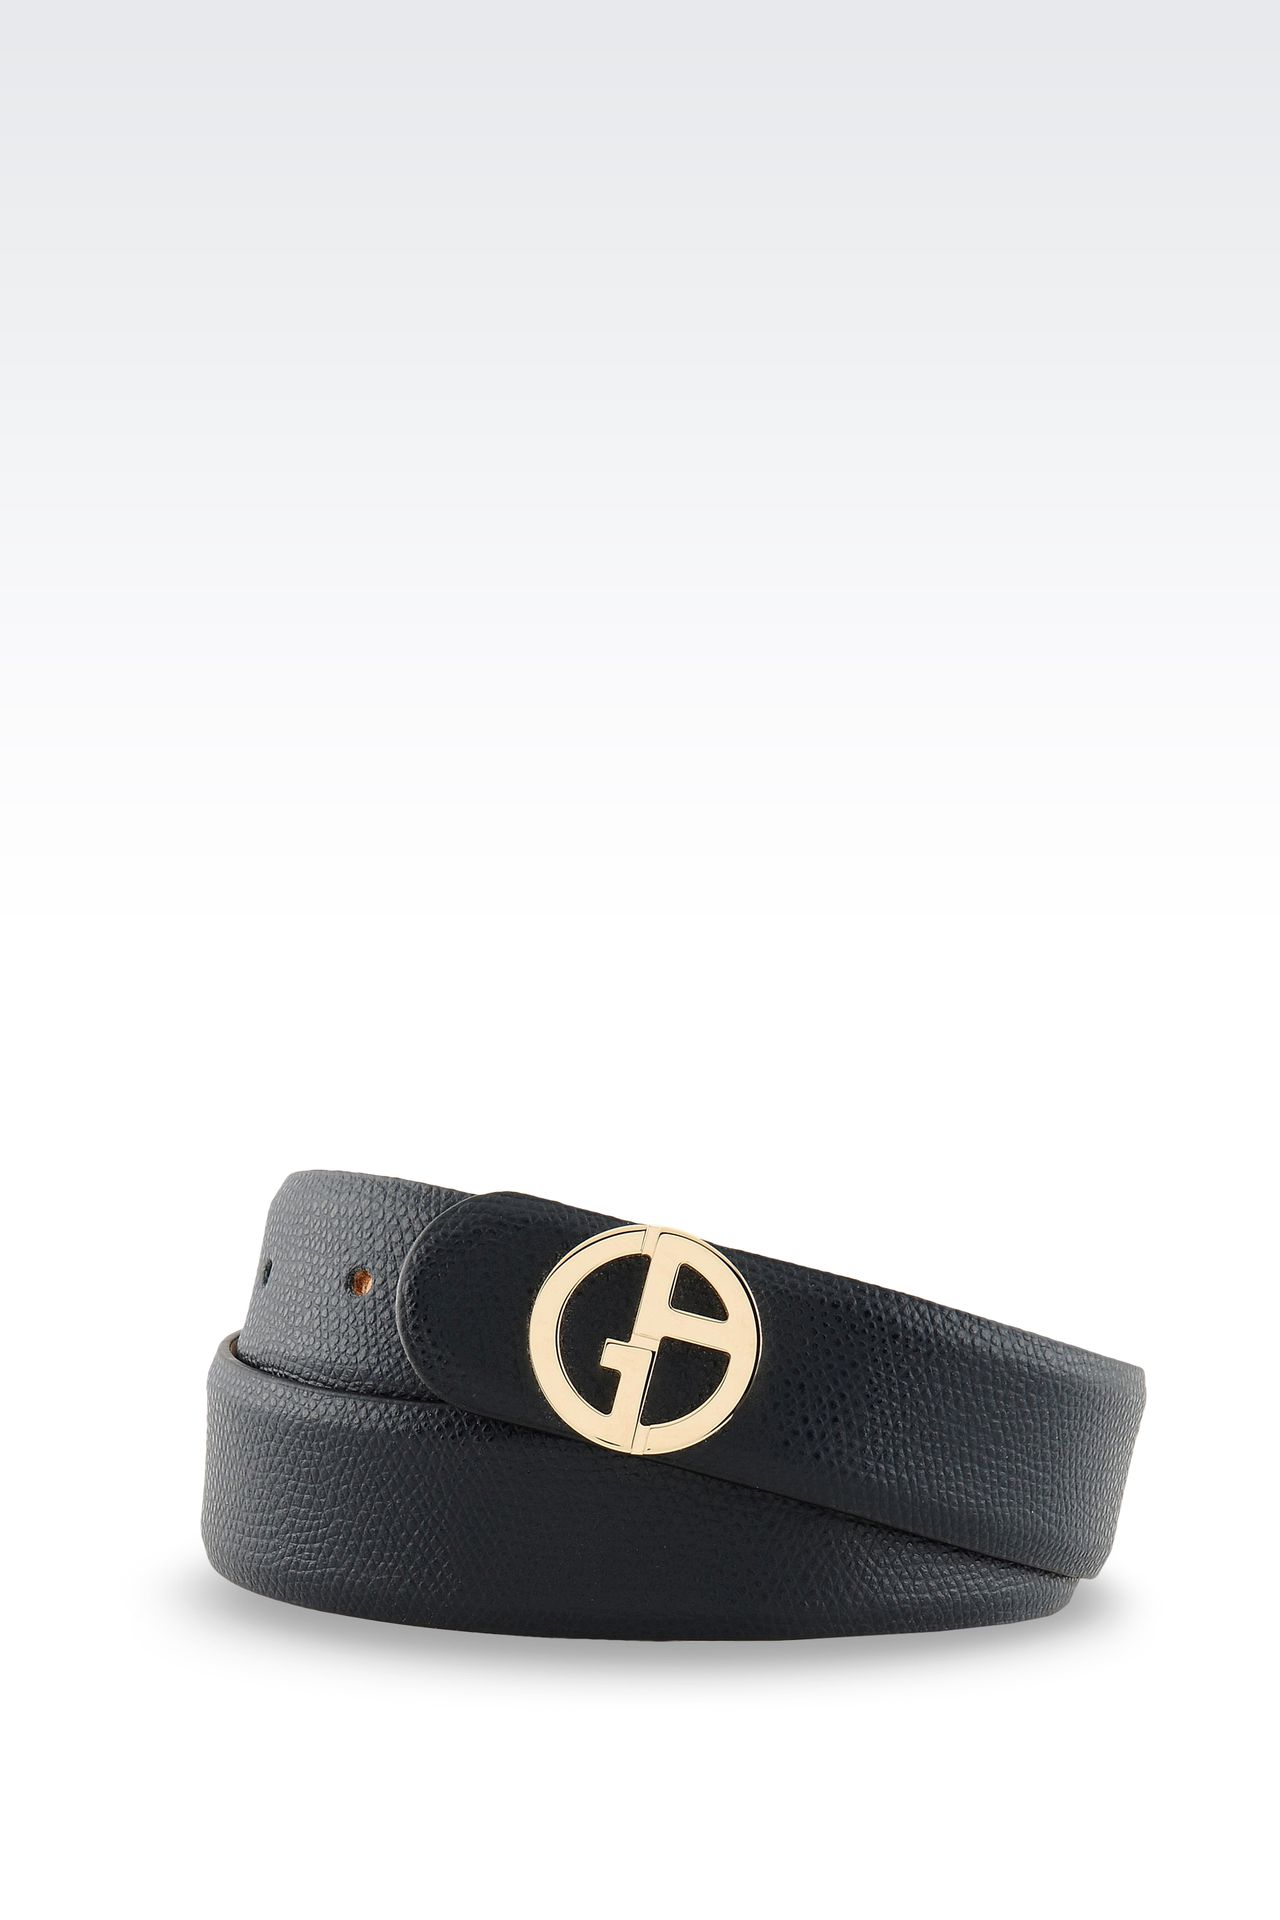 PRINTED LEATHER BELT WITH LOGOED BUCKLE : Leather belts Women by Armani - 0